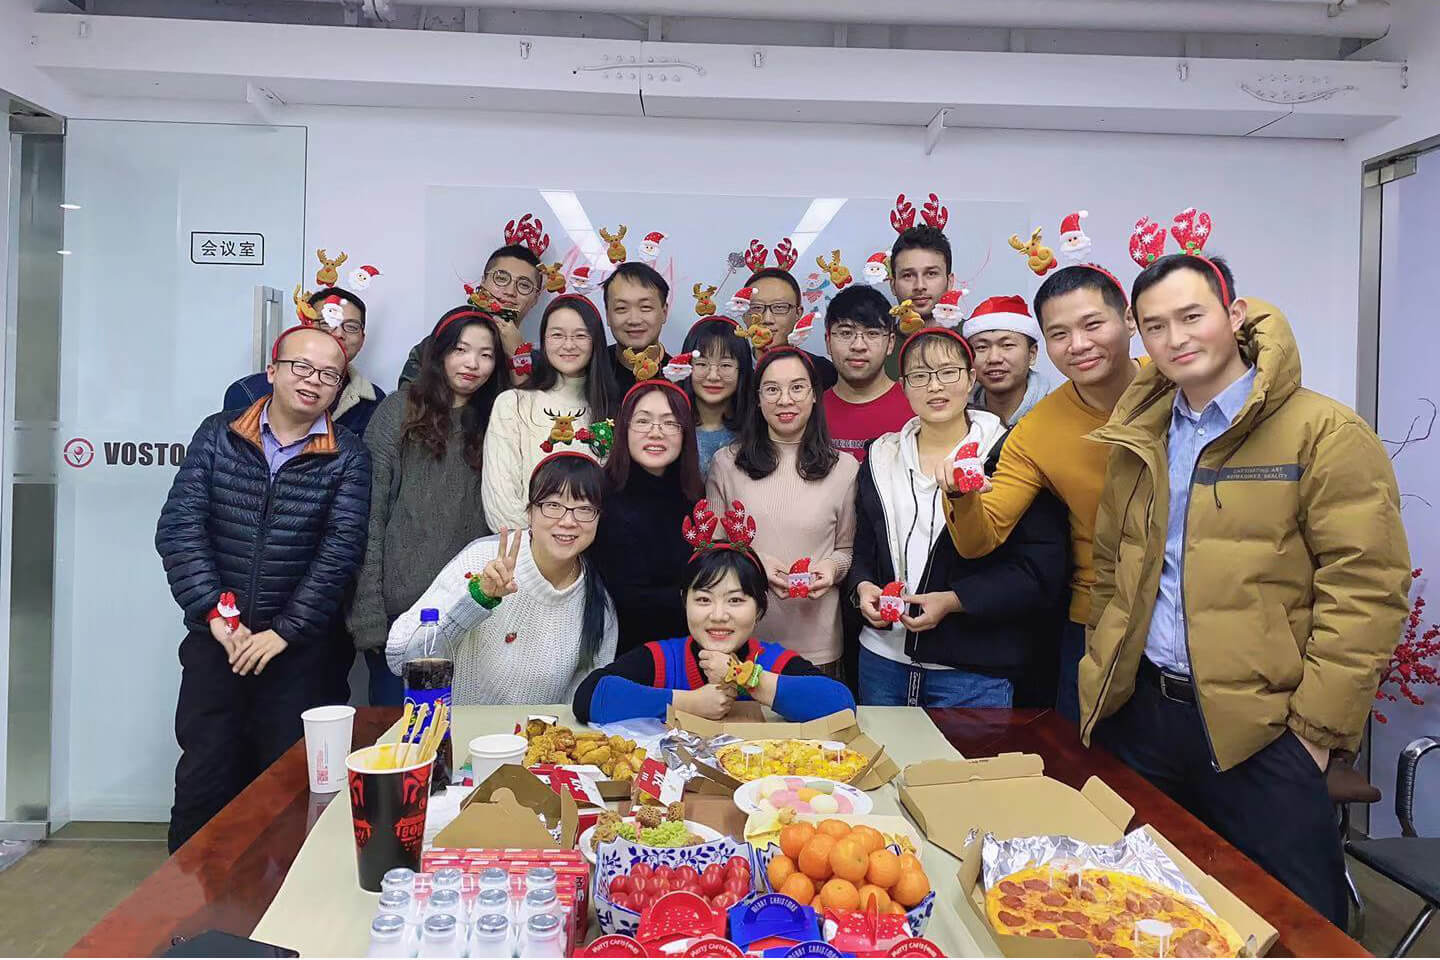 On December 25,2019,our company held a Christmas celebration event. Merry Chritmas!